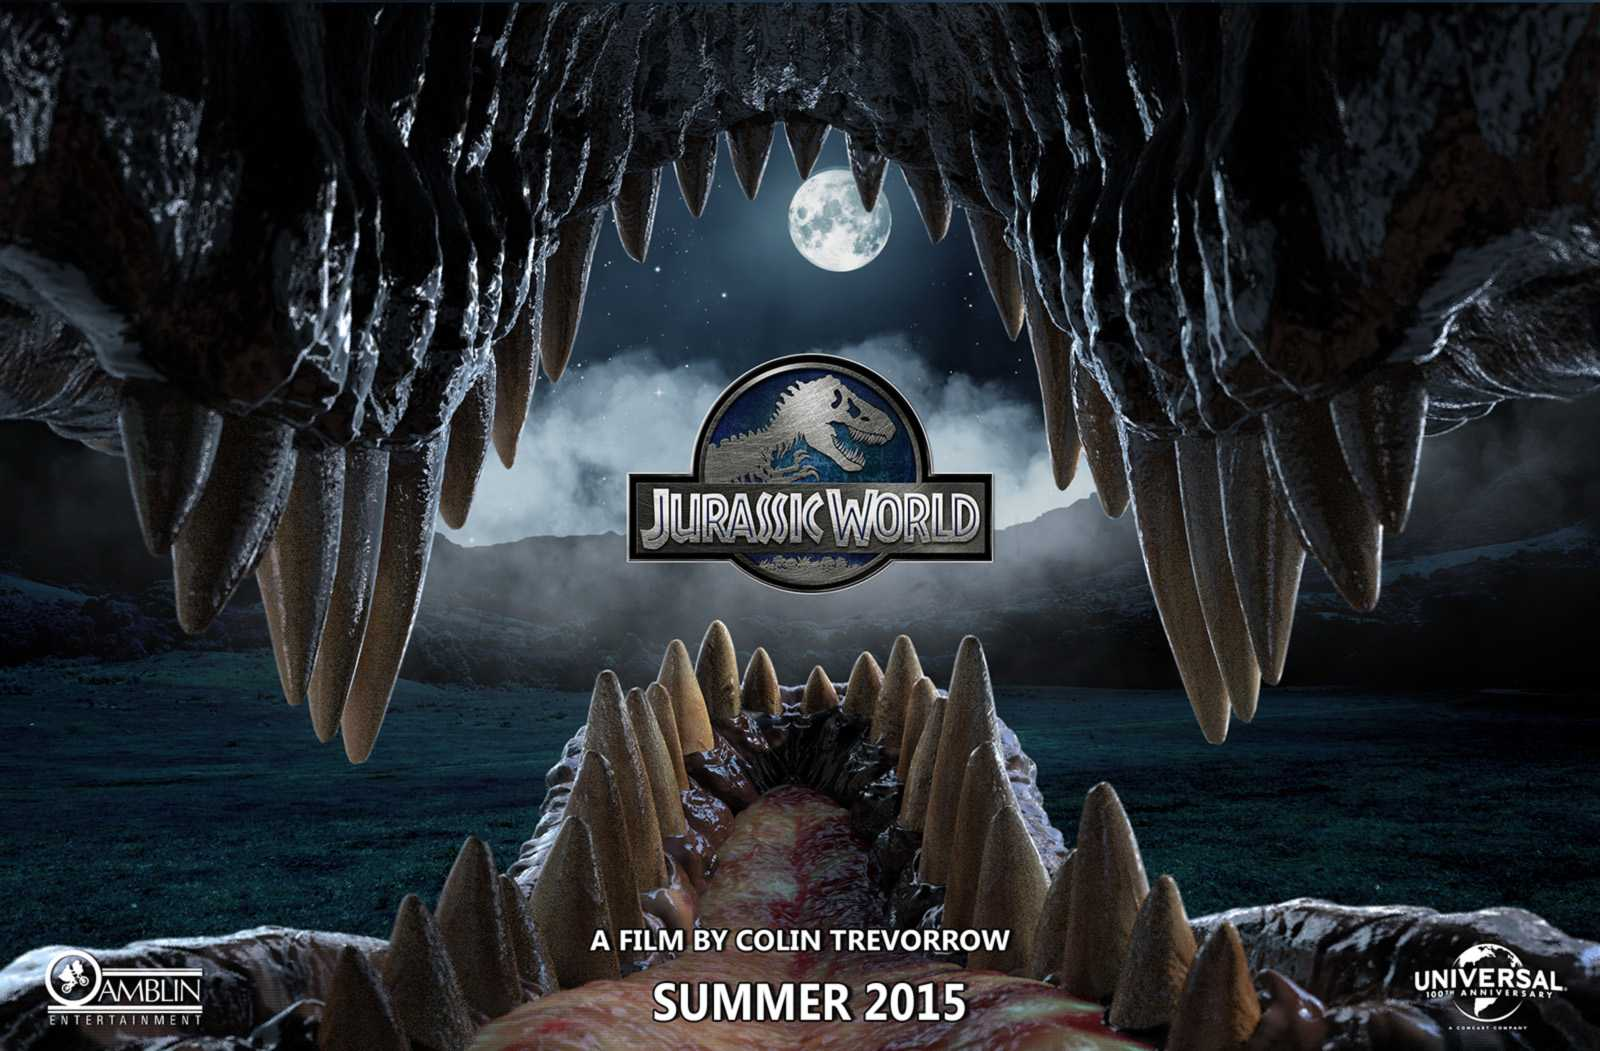 Colin Trevorrow Tweets First Glimpse At 'Jurassic World' | jurassic world